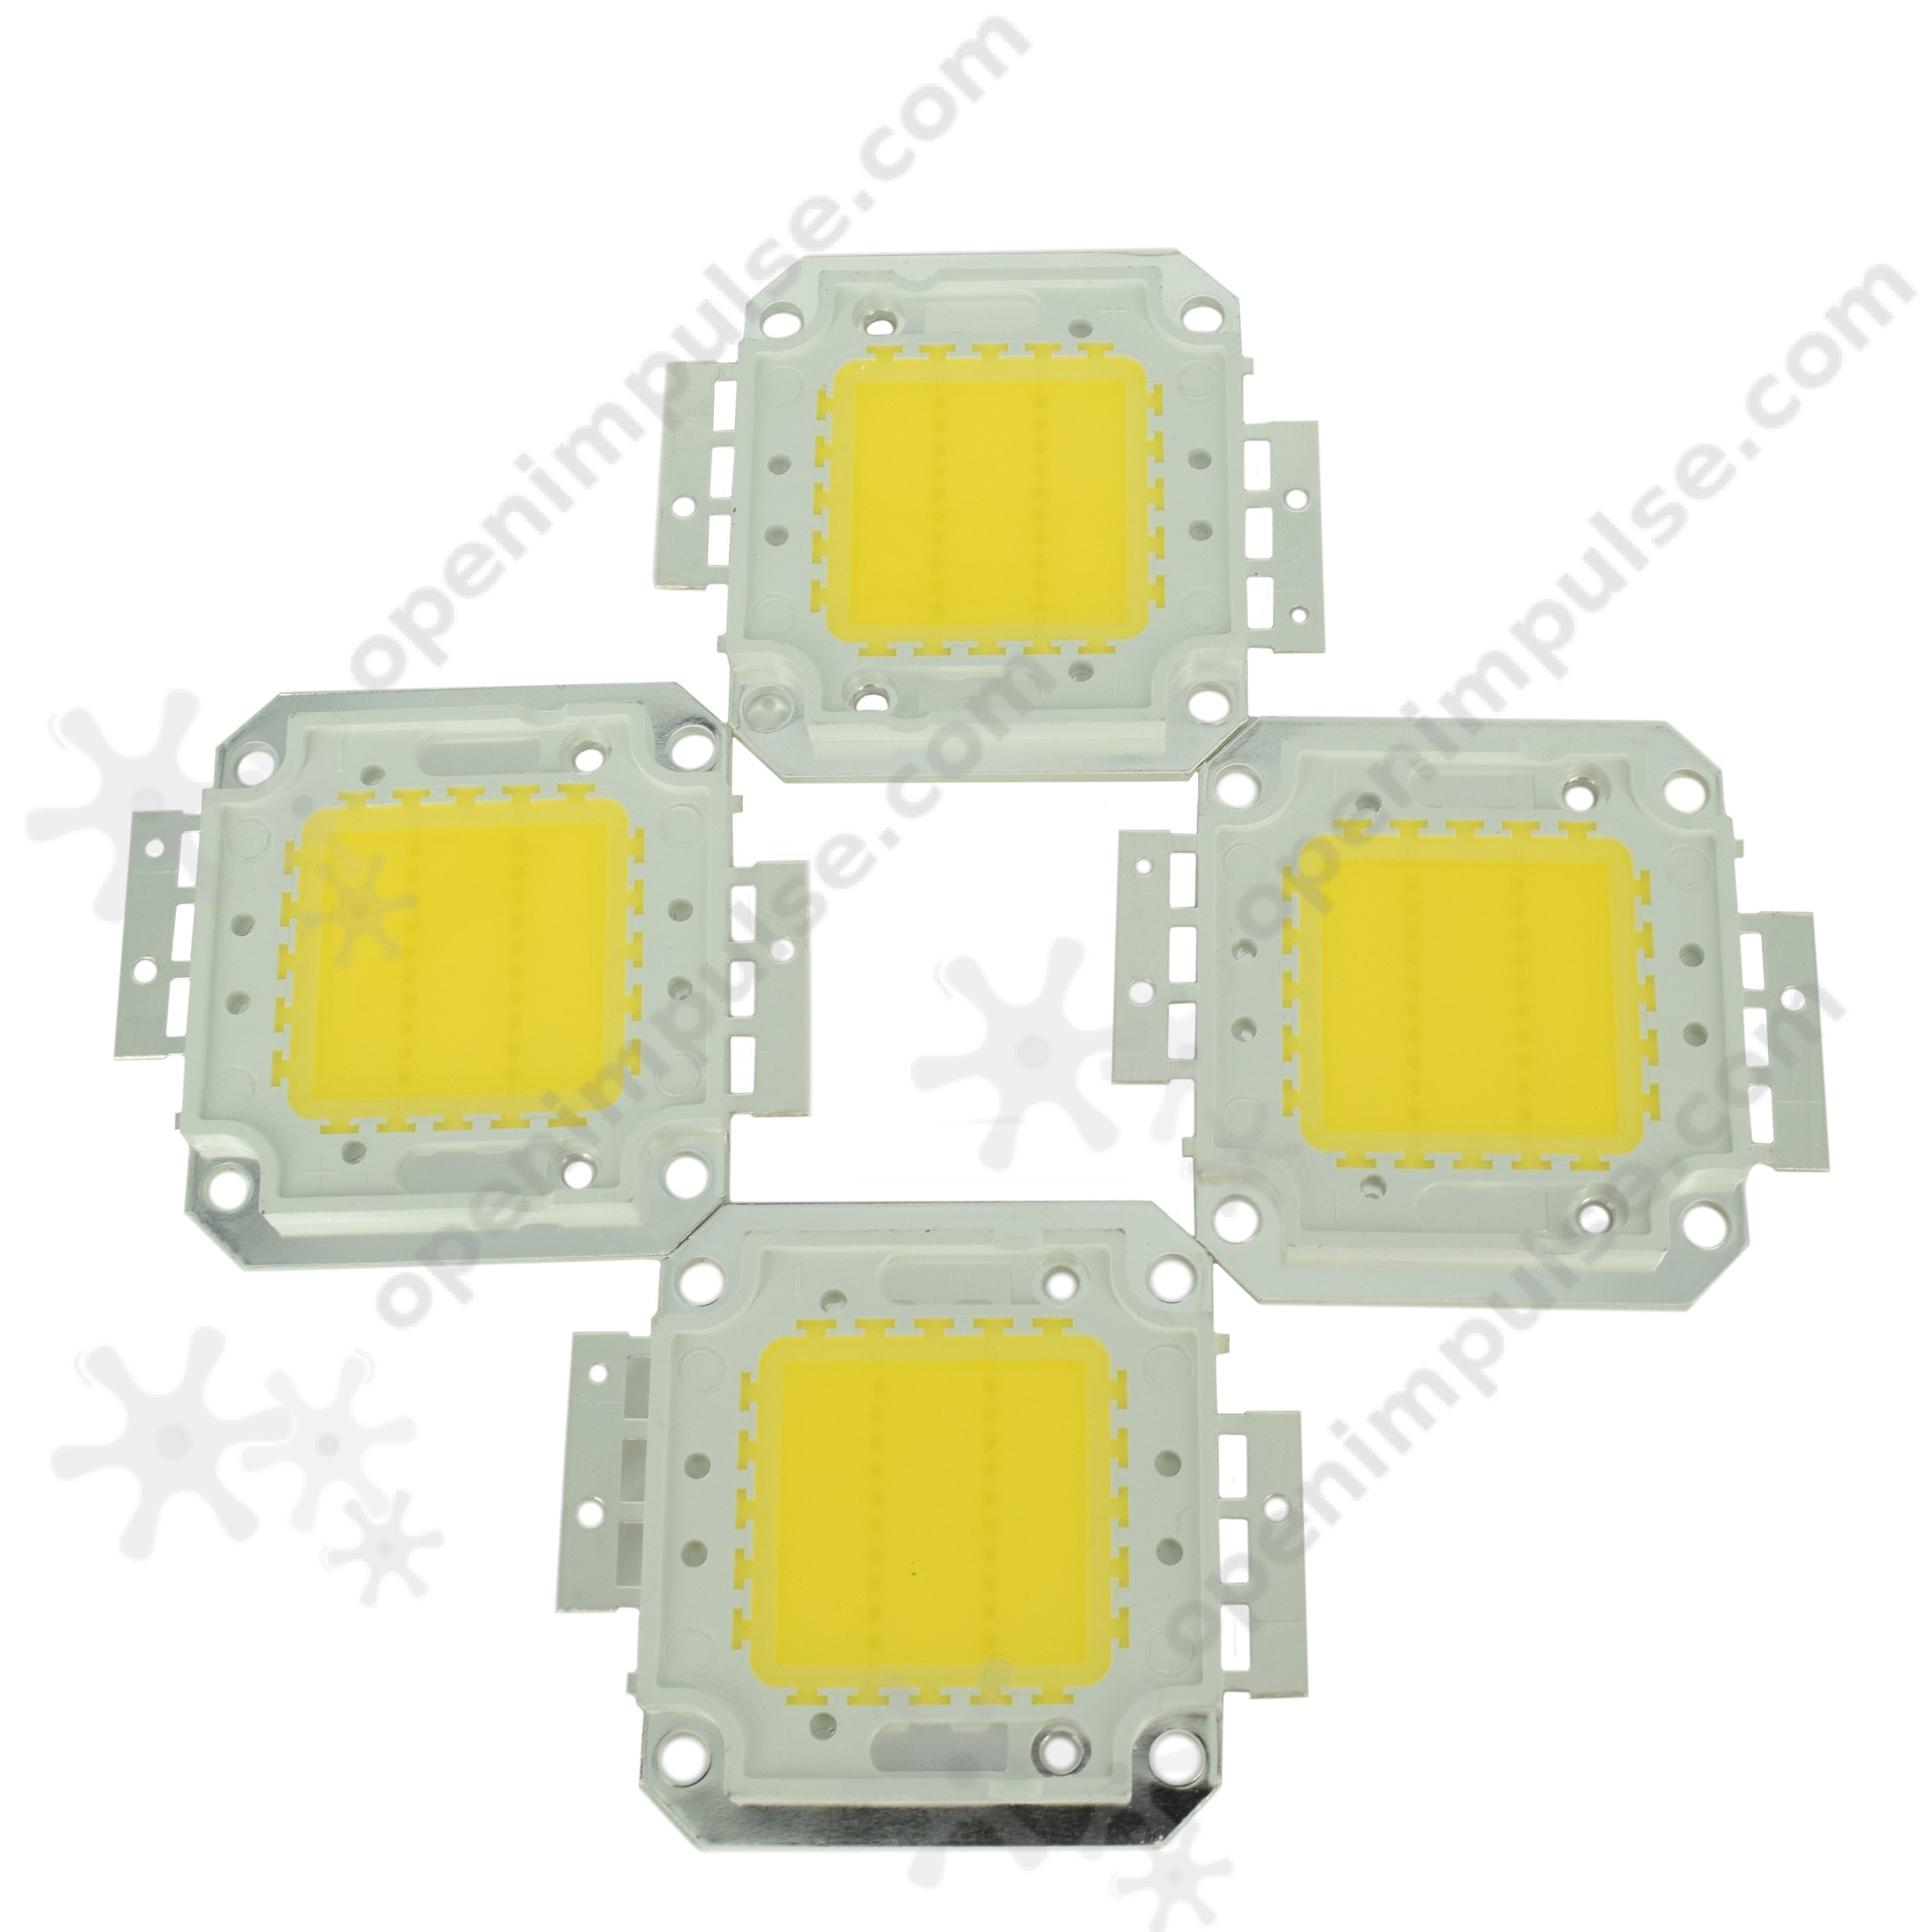 50w led with color temperature of 3000 3500 k open impulseopen impulse. Black Bedroom Furniture Sets. Home Design Ideas